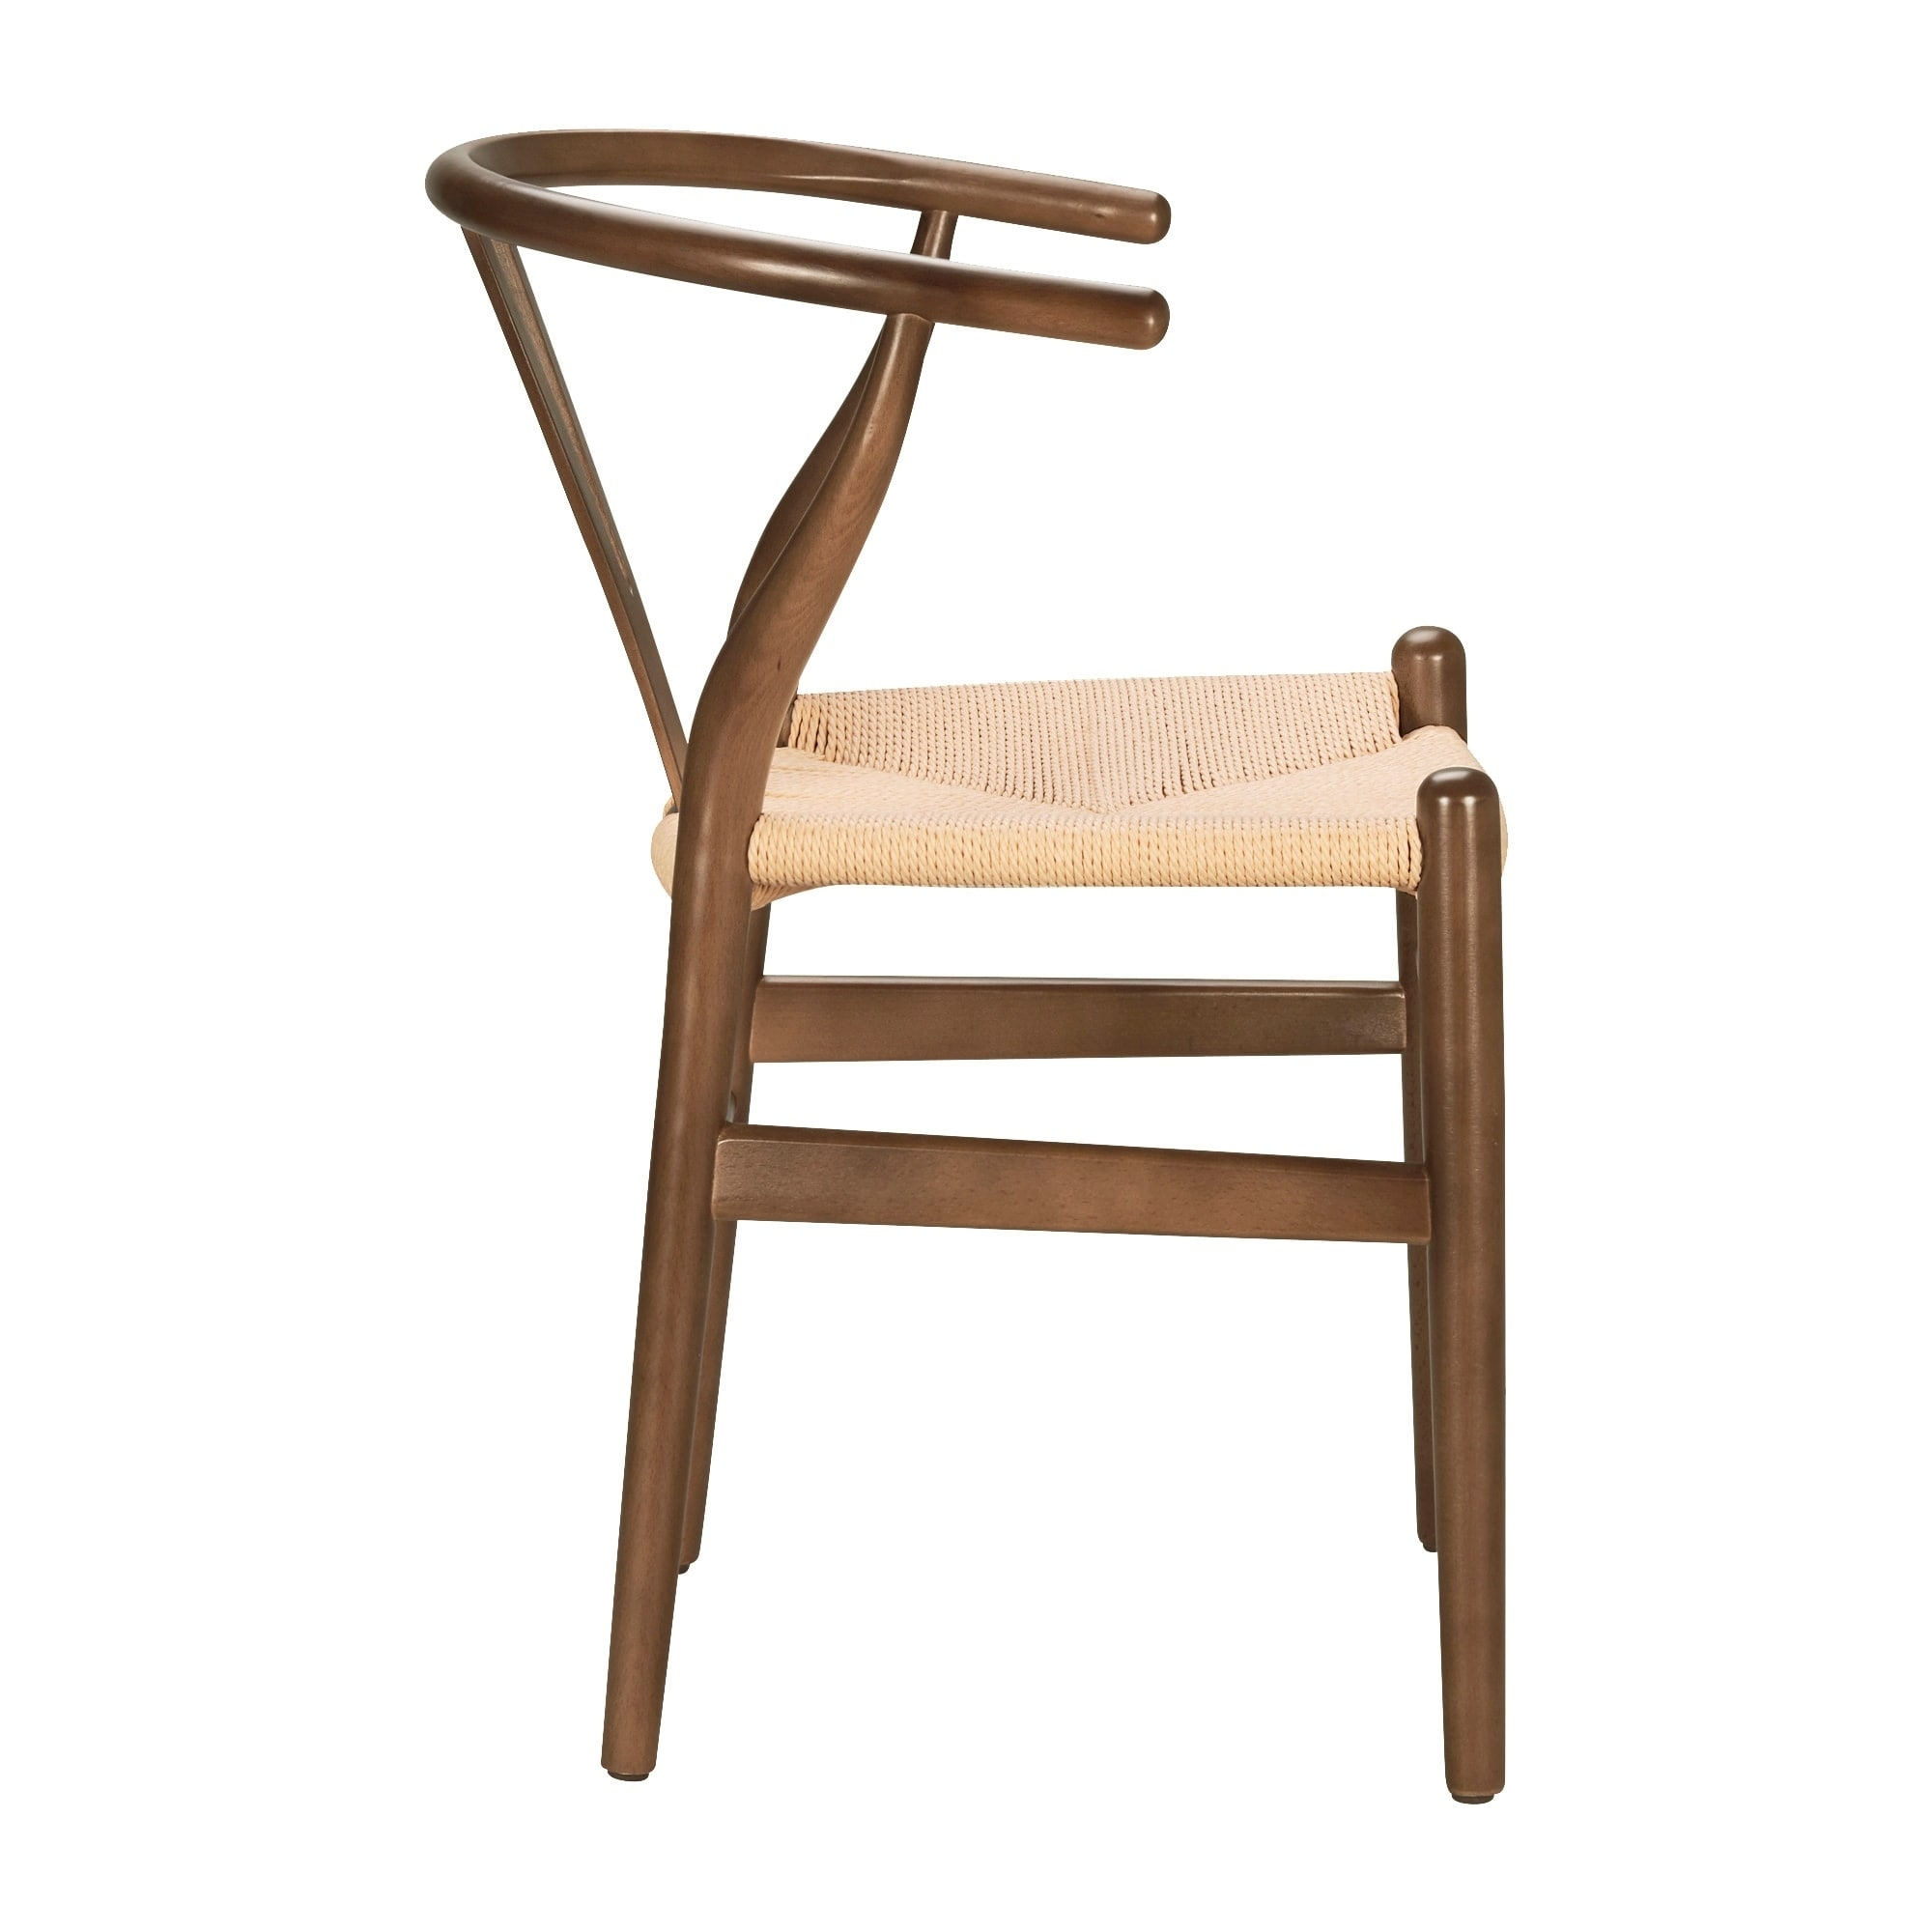 bark furniture. Bark Furniture Poly And Rope Walnut-finished Solid Wood Weave Chair - Free Shipping Today Overstock 16636929 Gciv.co